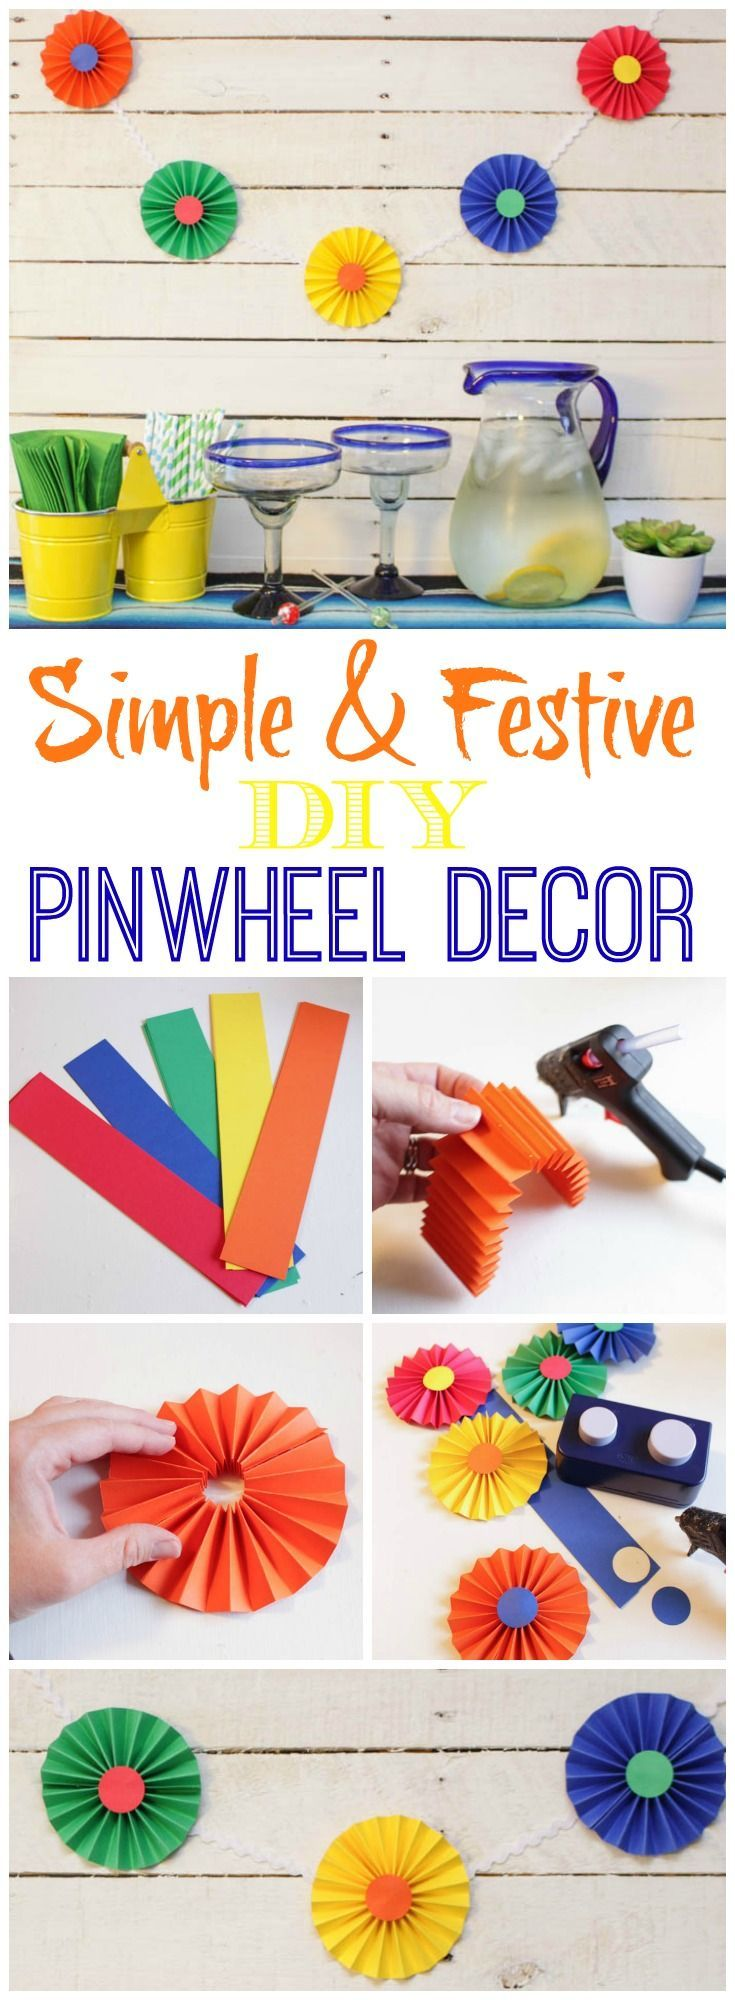 Great tutorial for these easy DIY pinwheels - they are so cute and festive and perfect for any party decor